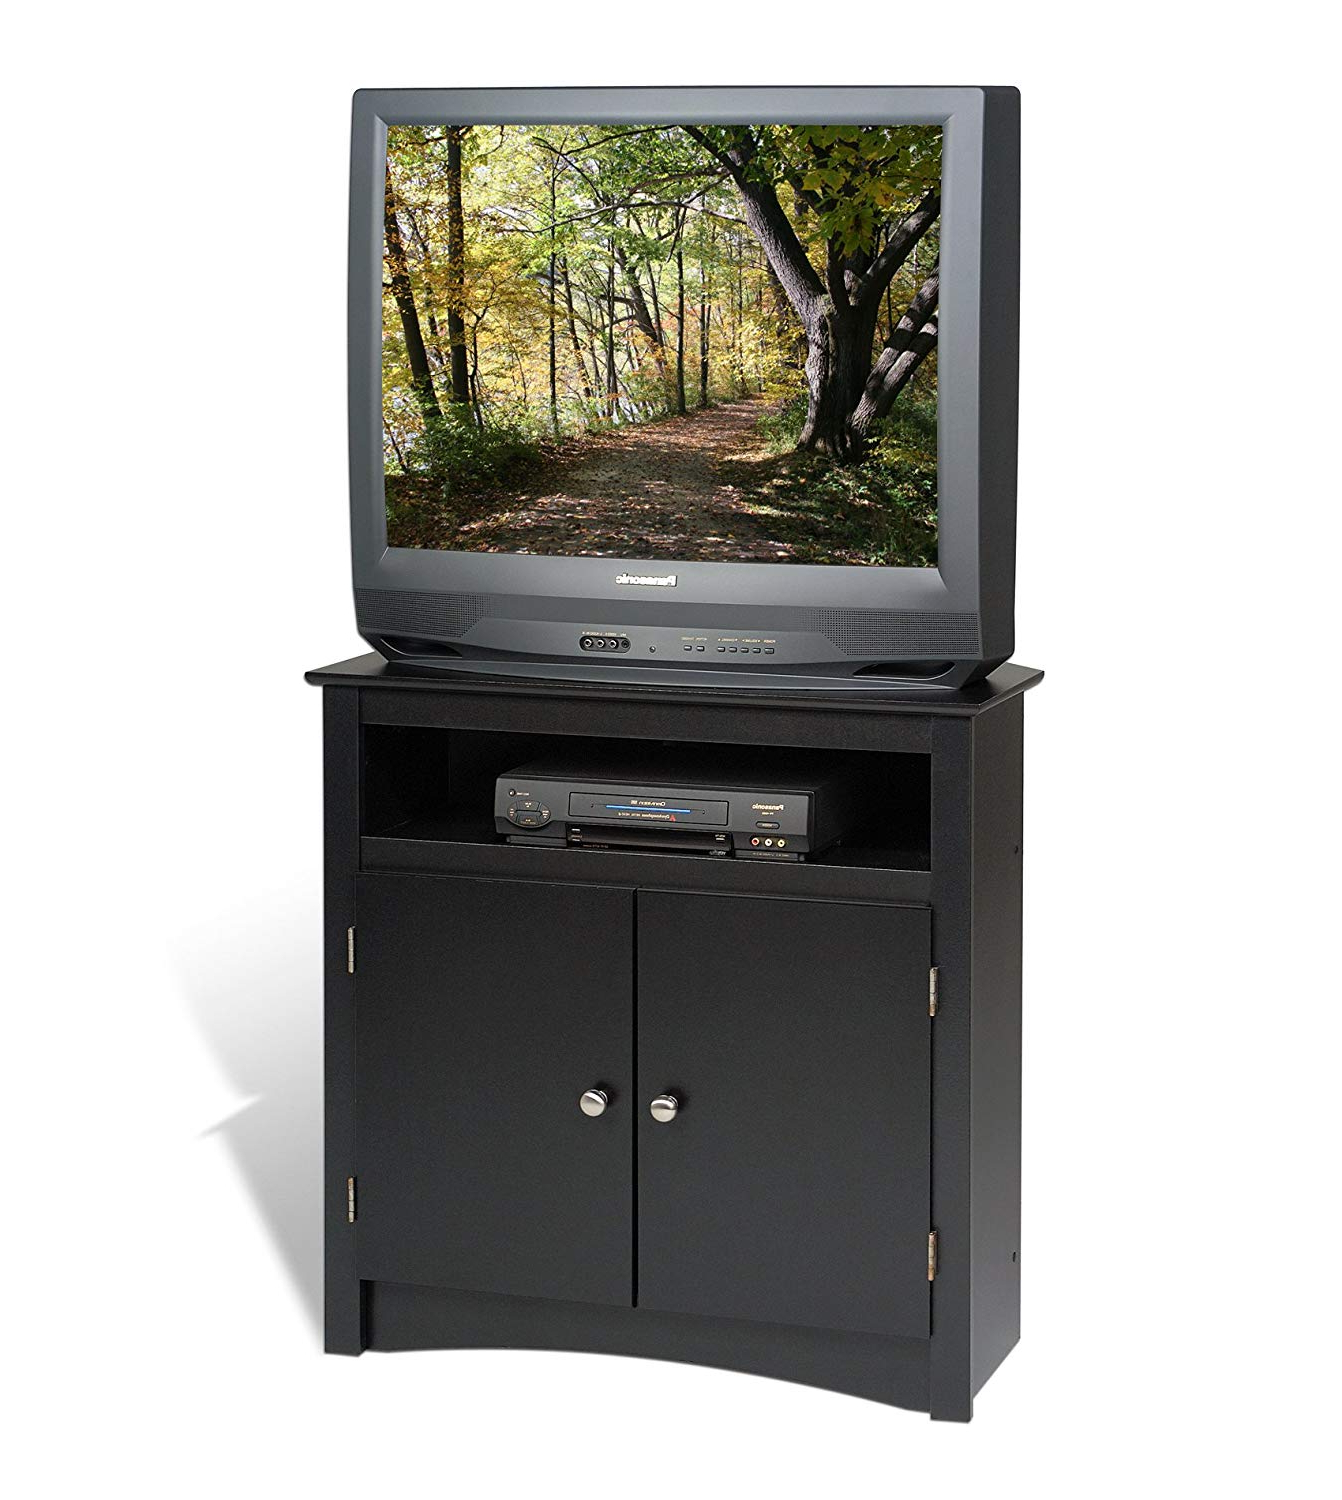 Amazon: Prepac Sonoma Corner Tv Cabinet, Black: Kitchen & Dining With Famous Black Corner Tv Cabinets (Gallery 2 of 20)